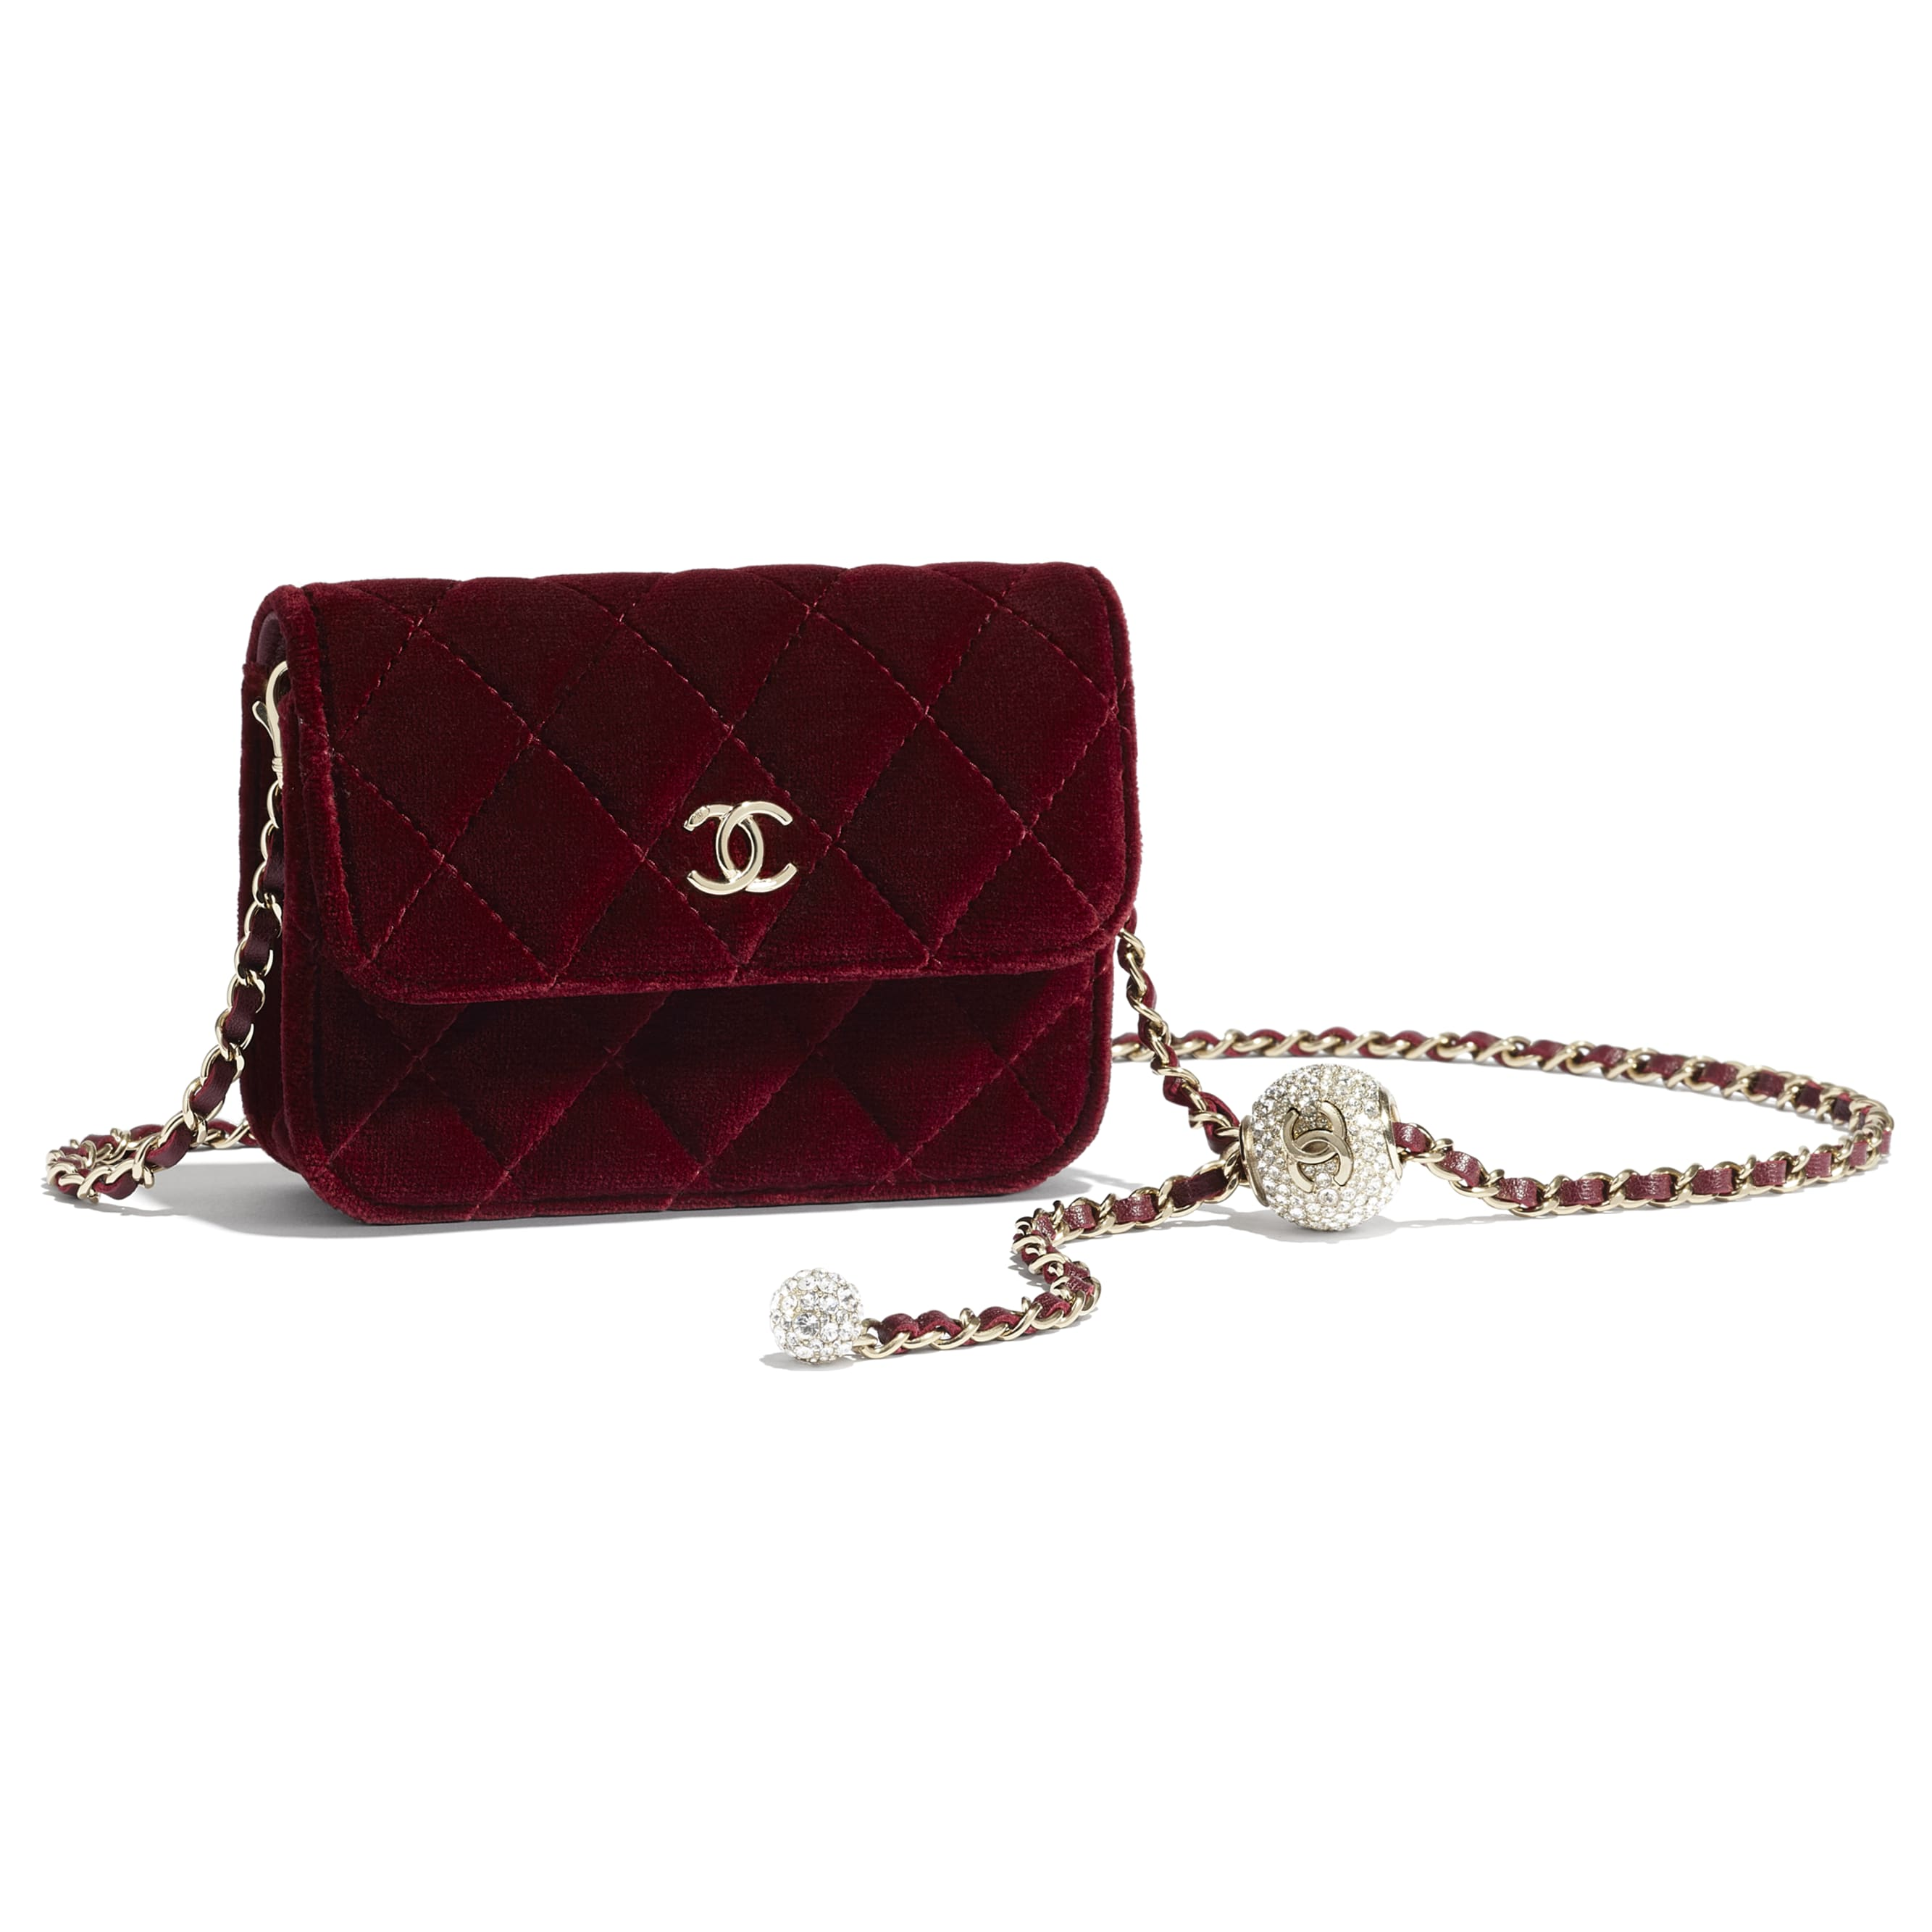 Clutch With Chain - Burgundy - Velvet, Diamanté & Silver-Tone Metal - CHANEL - Other view - see standard sized version